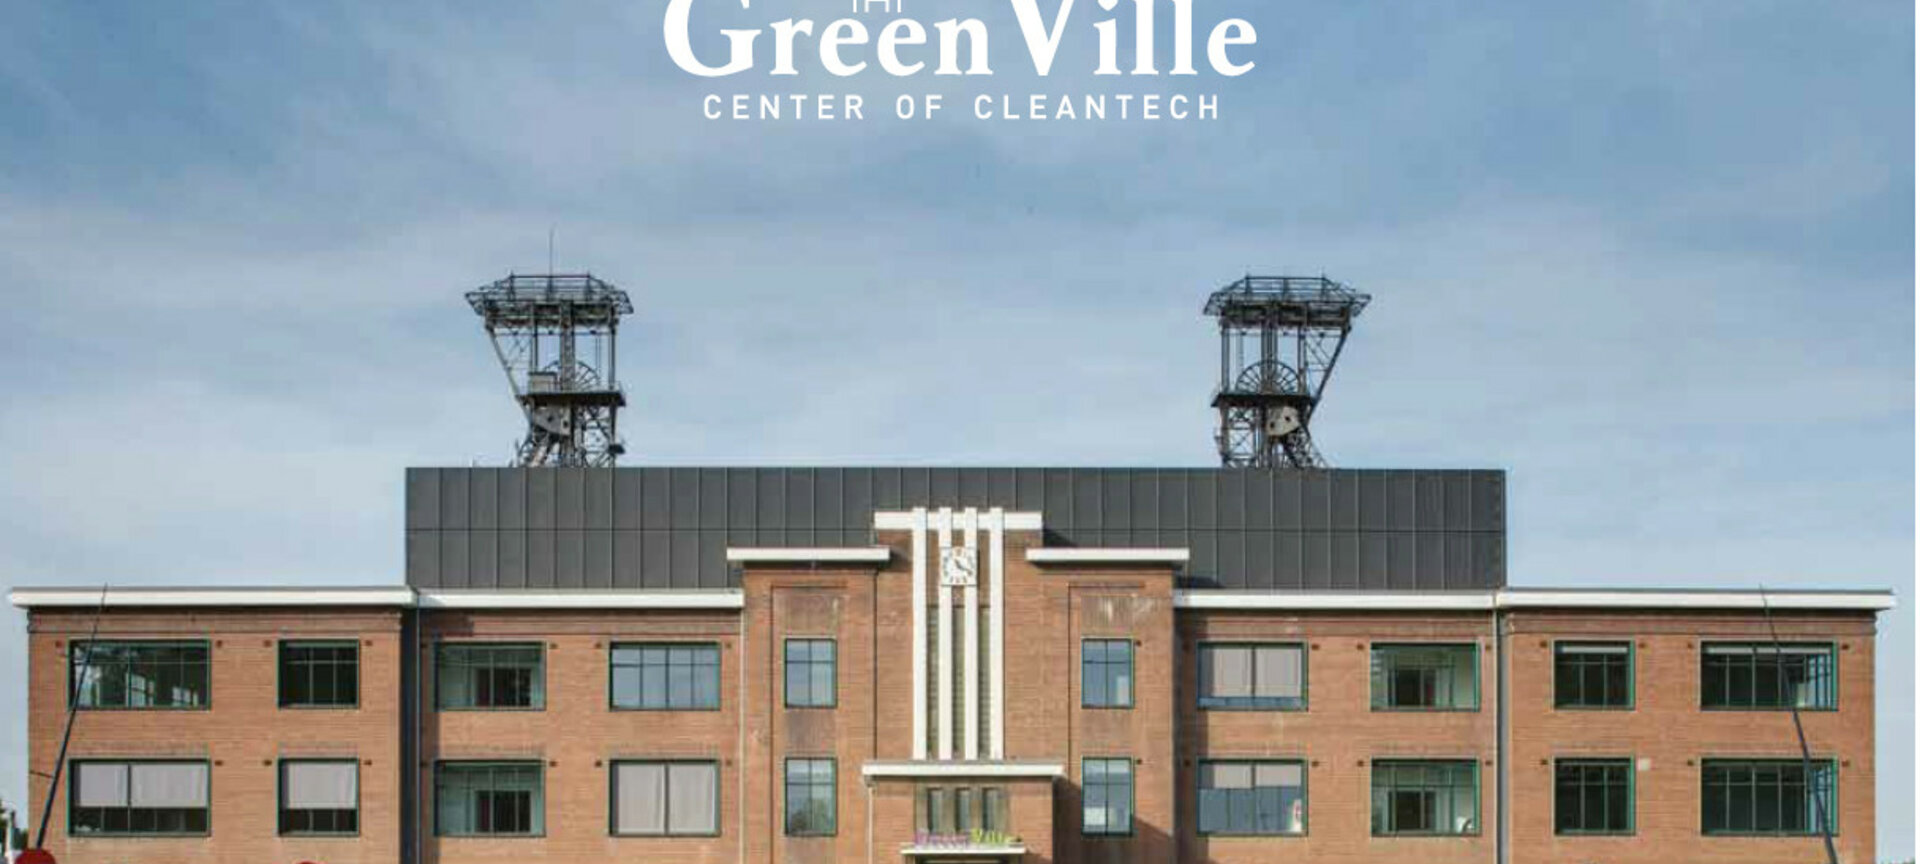 Greenville, cleantech dienstencentrum - Green Ville